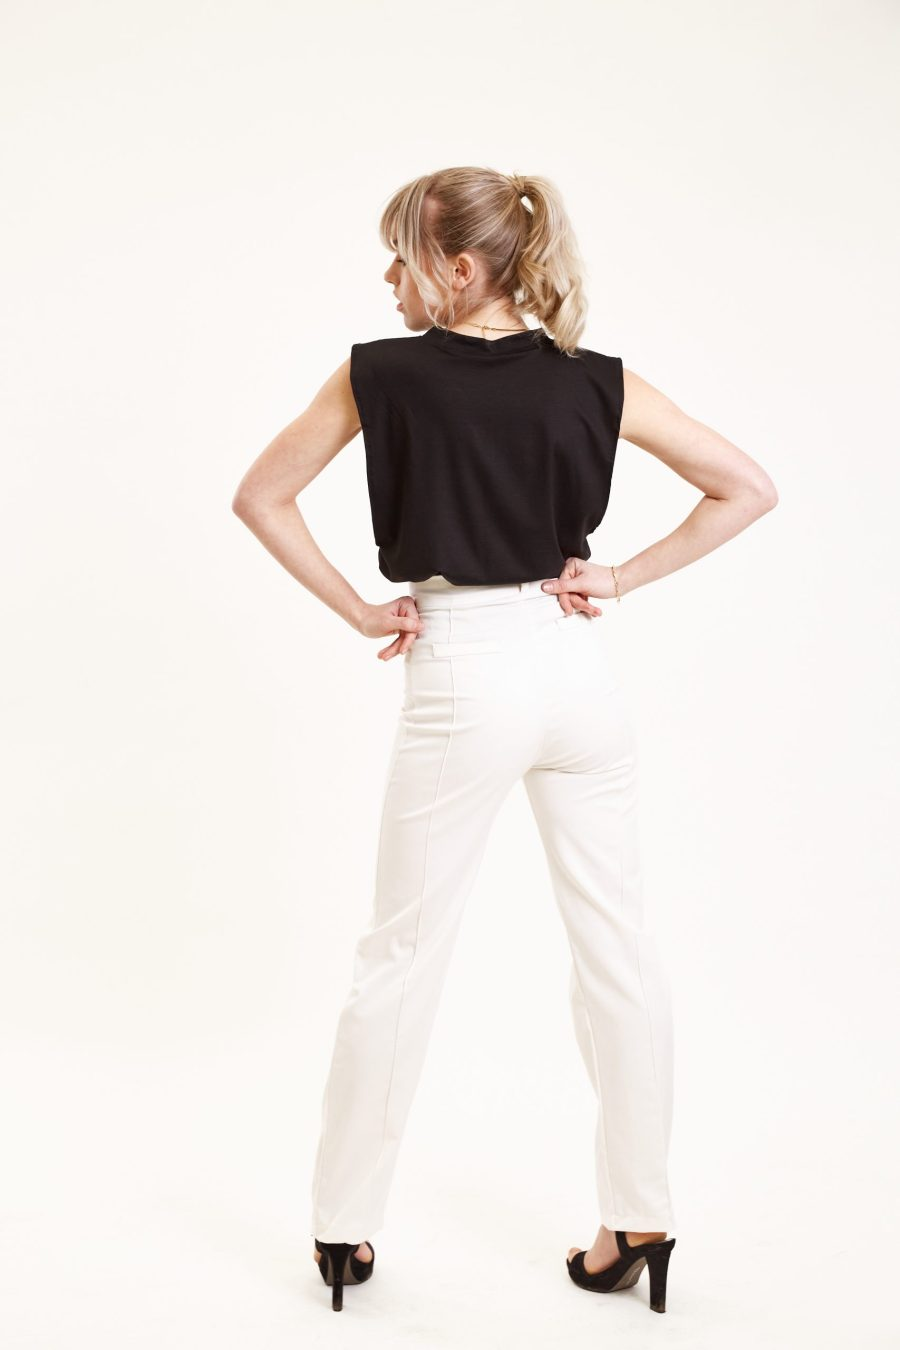 Dawn pants outfit bright white back